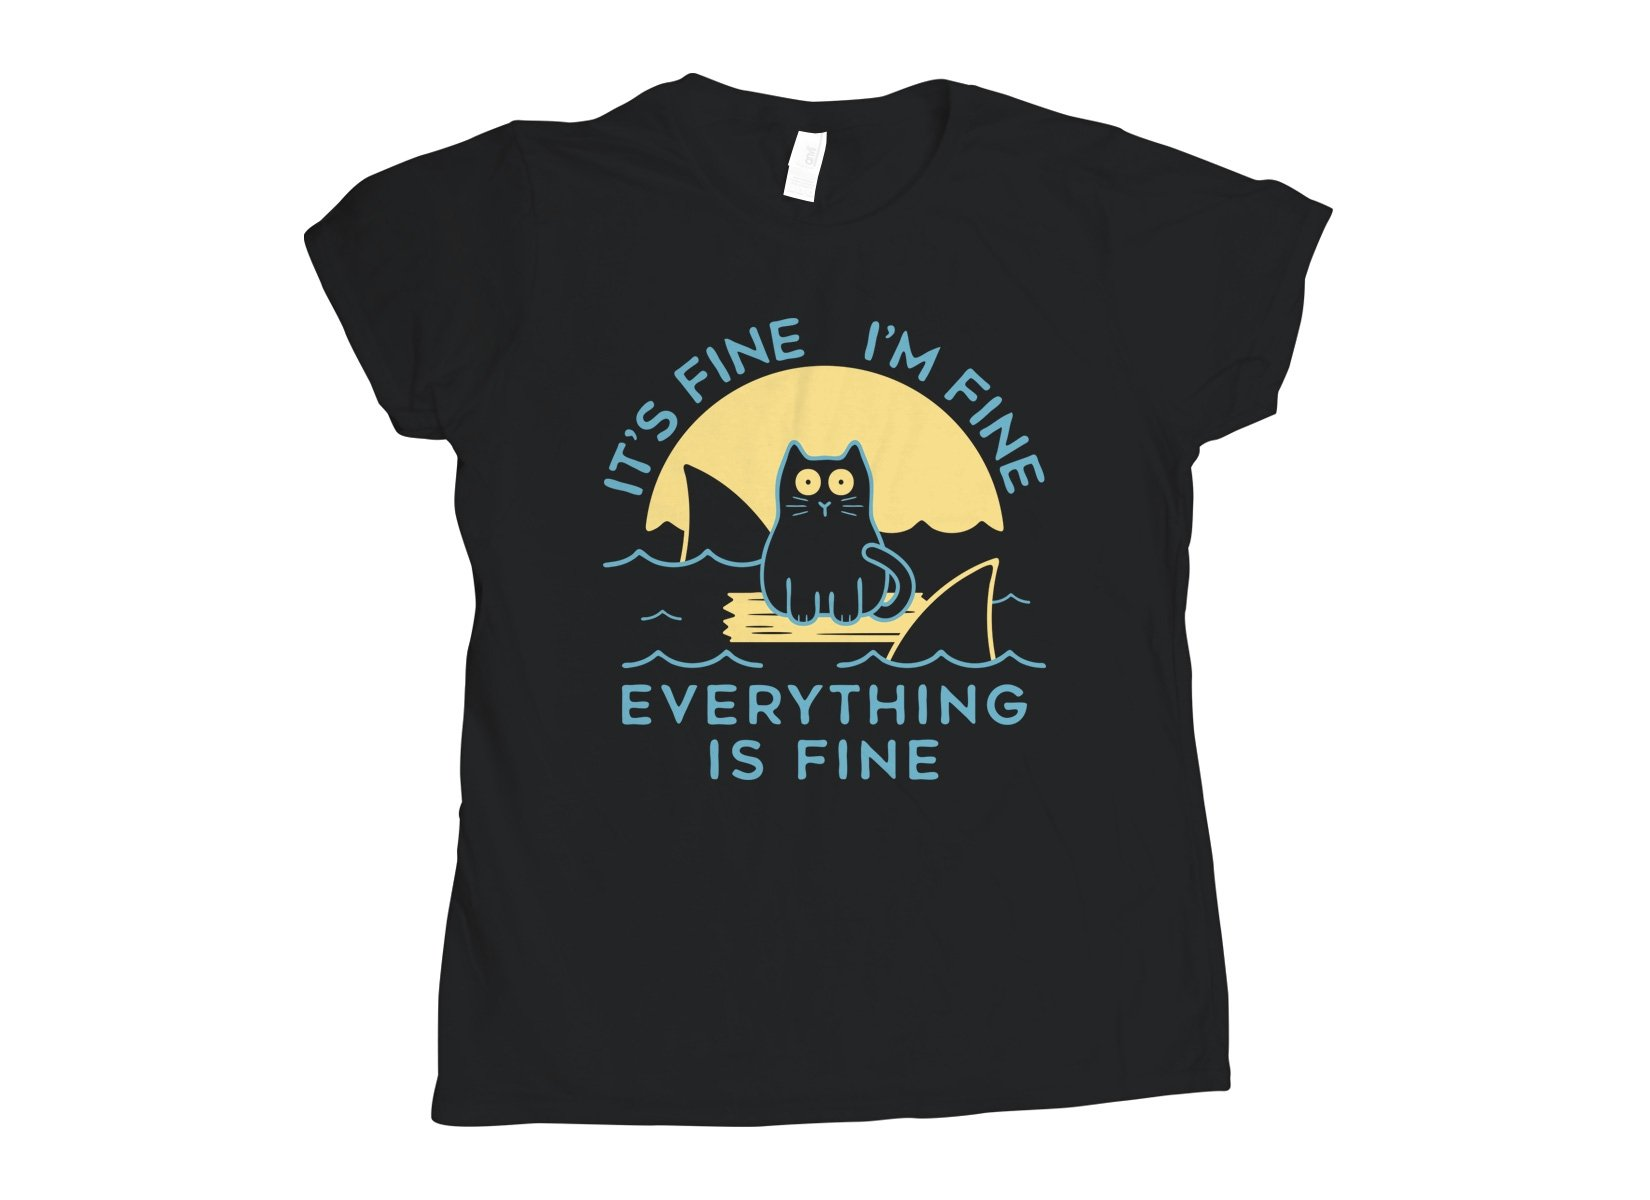 It's Fine I'm Fine Everything Is Fine on Womens T-Shirt